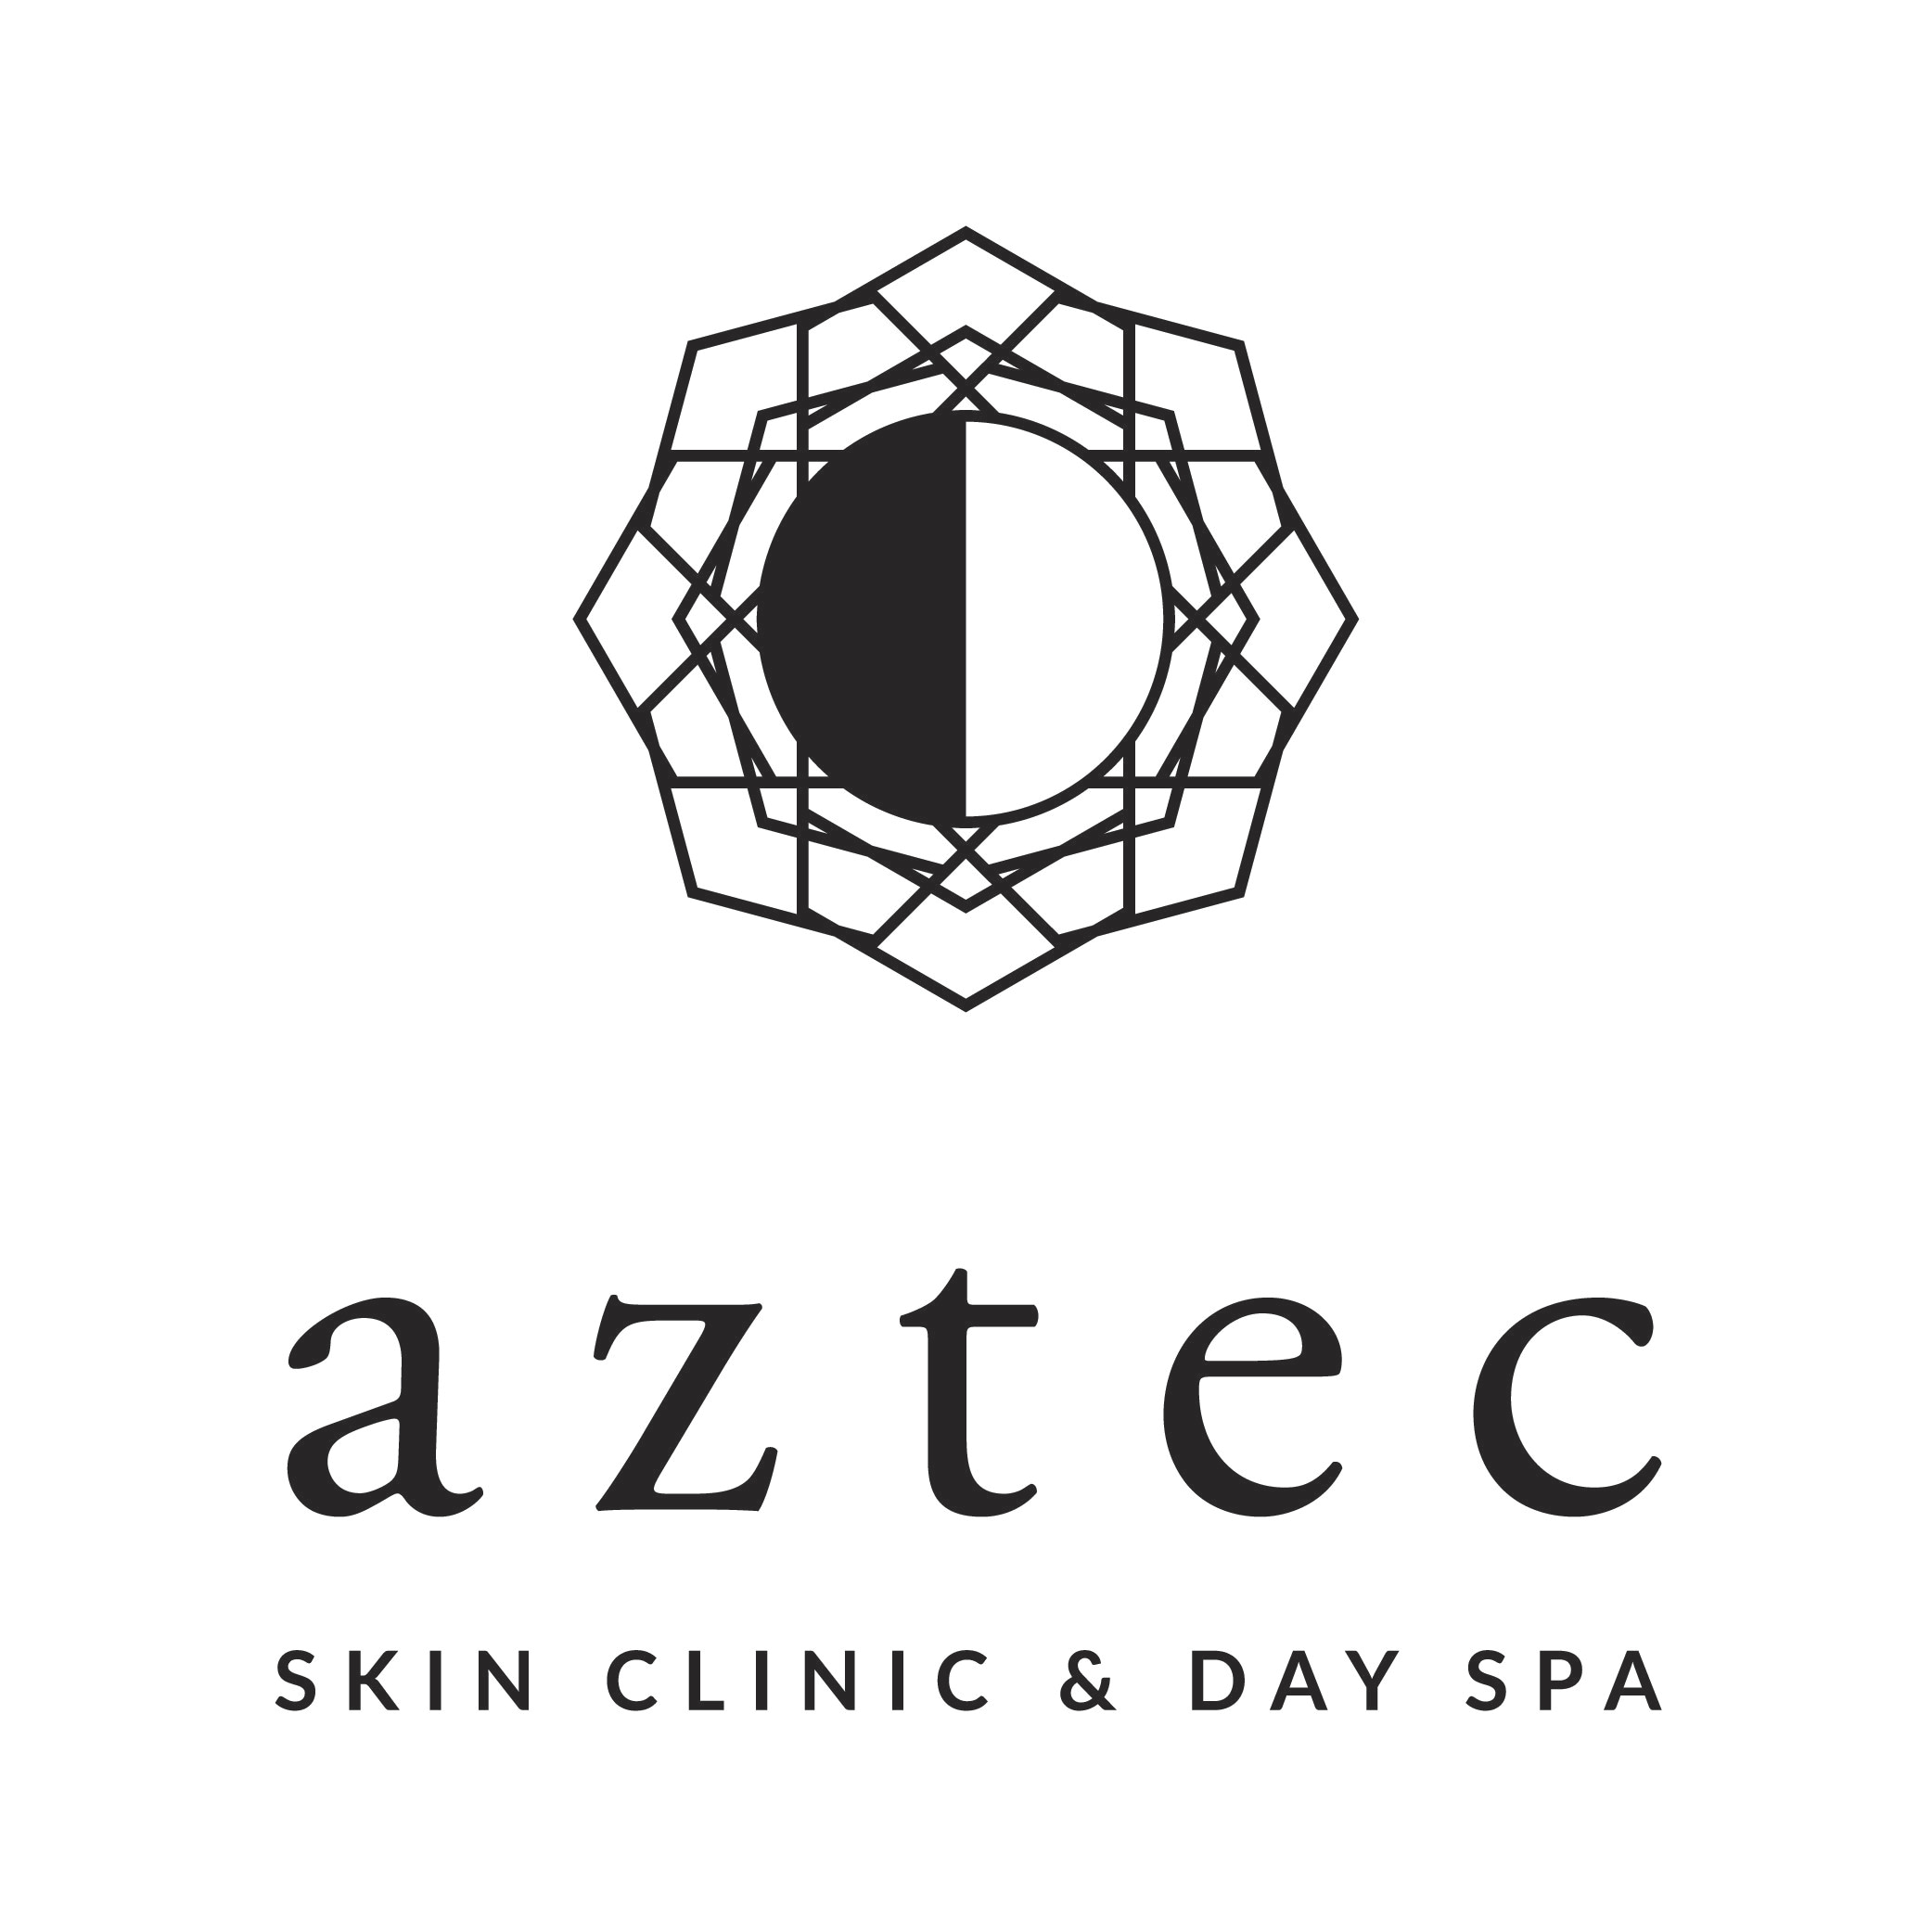 Aztec Skin Clinic Amp Day Spa